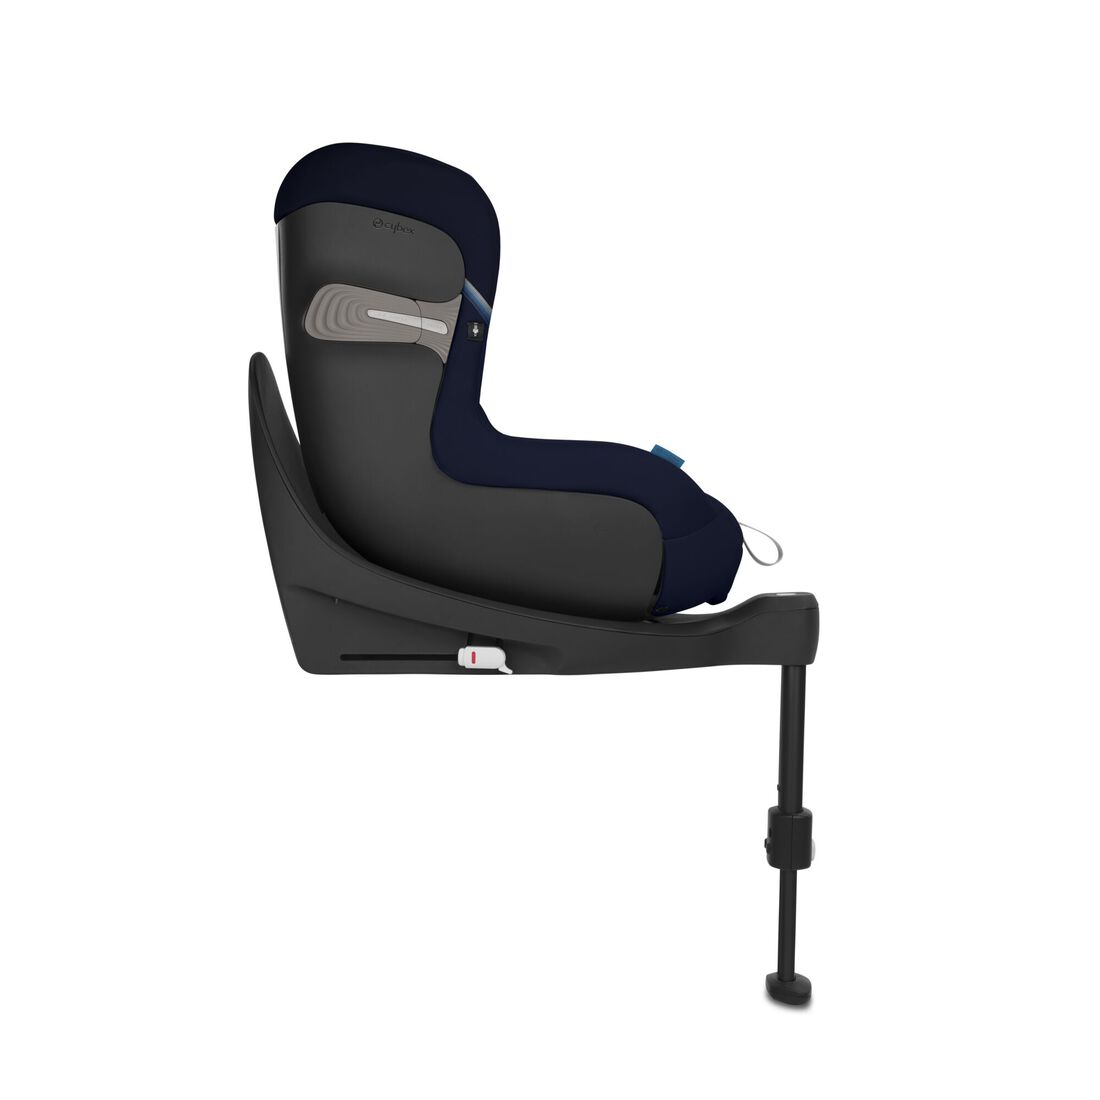 CYBEX Sirona SX2 i-Size - Navy Blue in Navy Blue large image number 4